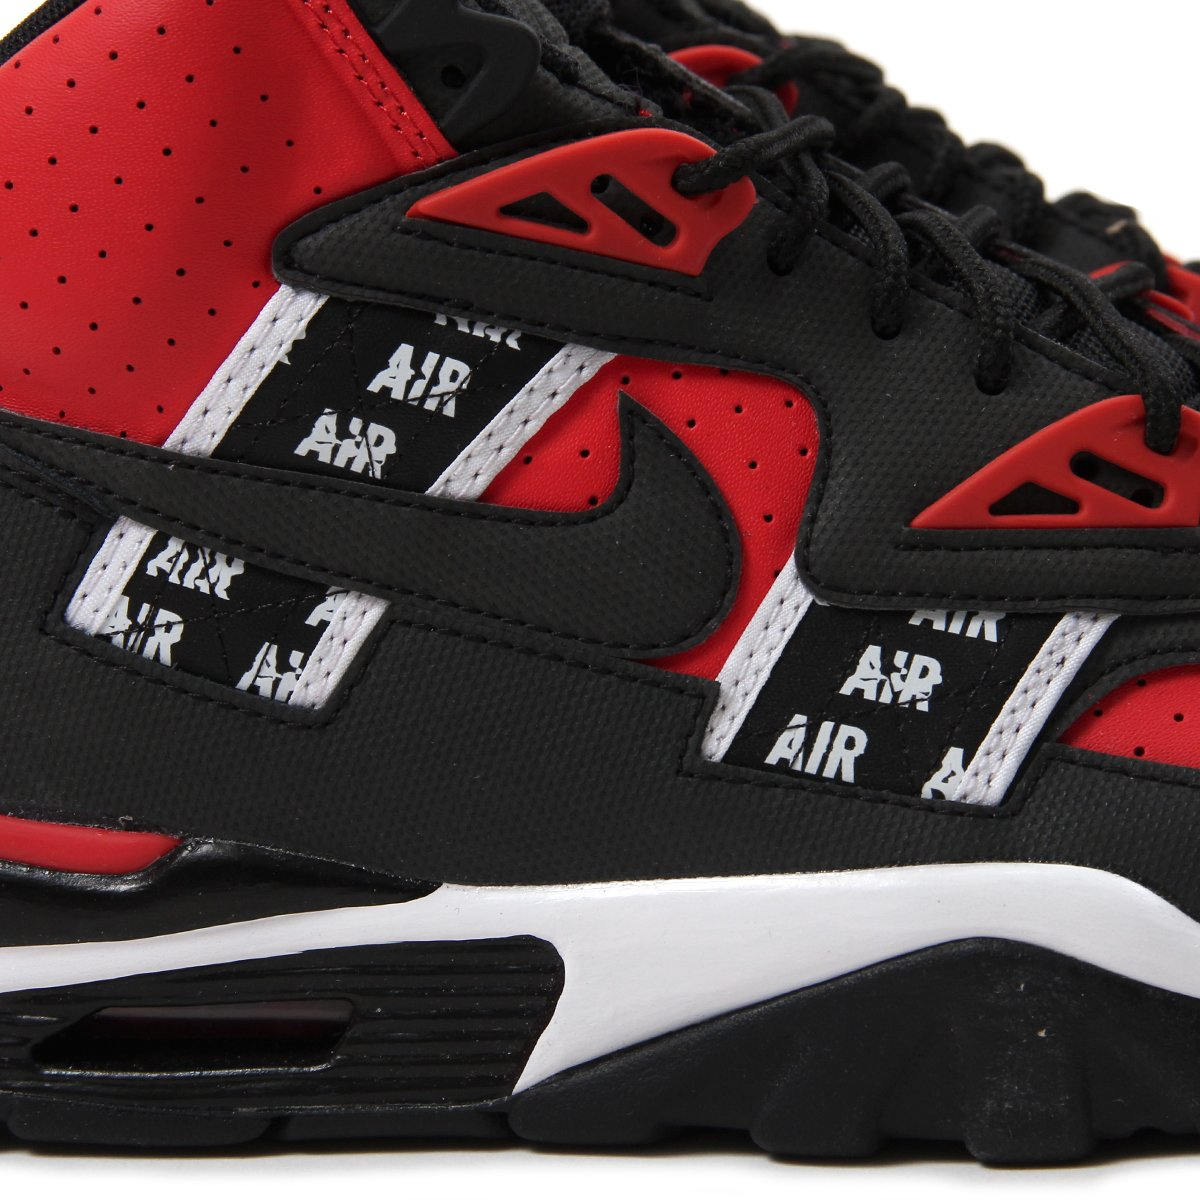 uk availability 04666 3bb93 ConceptsIntl | Nike Air Trainer SC High SOA (Speed Red/Black-White)